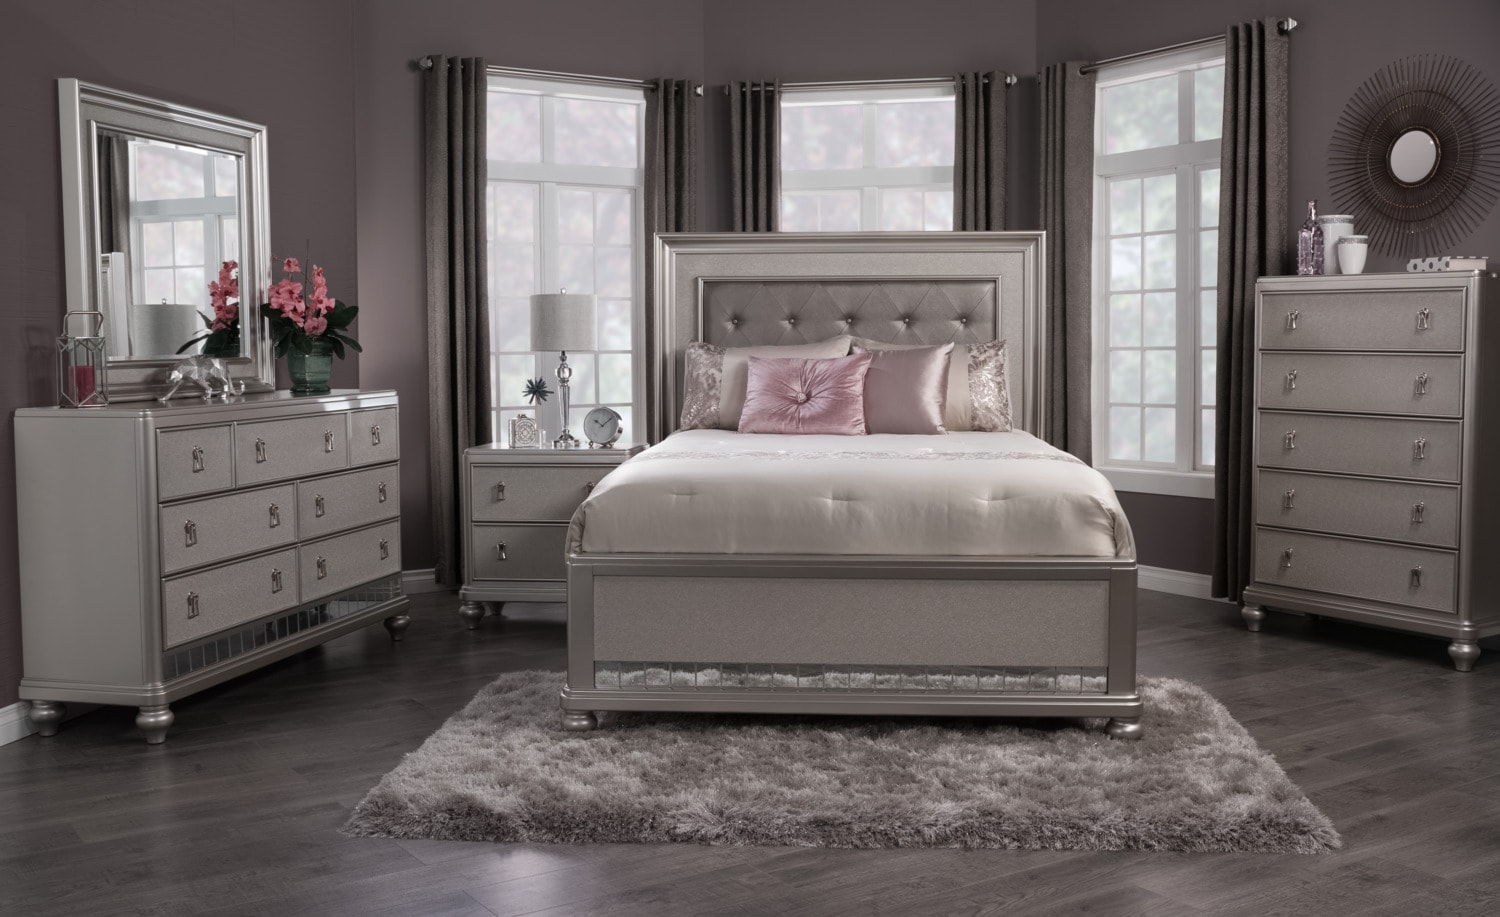 Diva 6 Piece King Bedroom Package The Brick